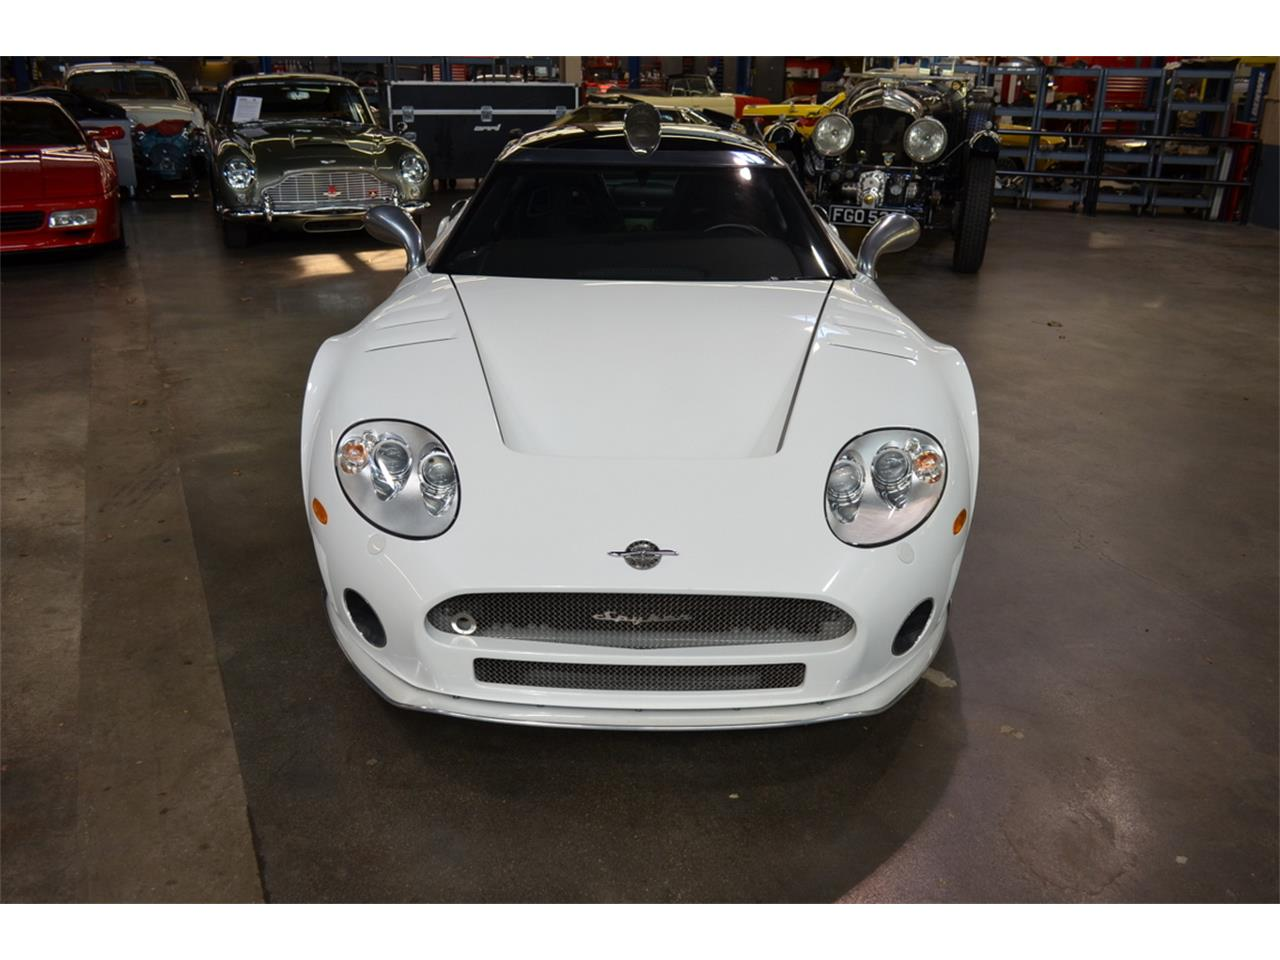 2010 Spyker C8 for sale in Huntington Station, NY – photo 2